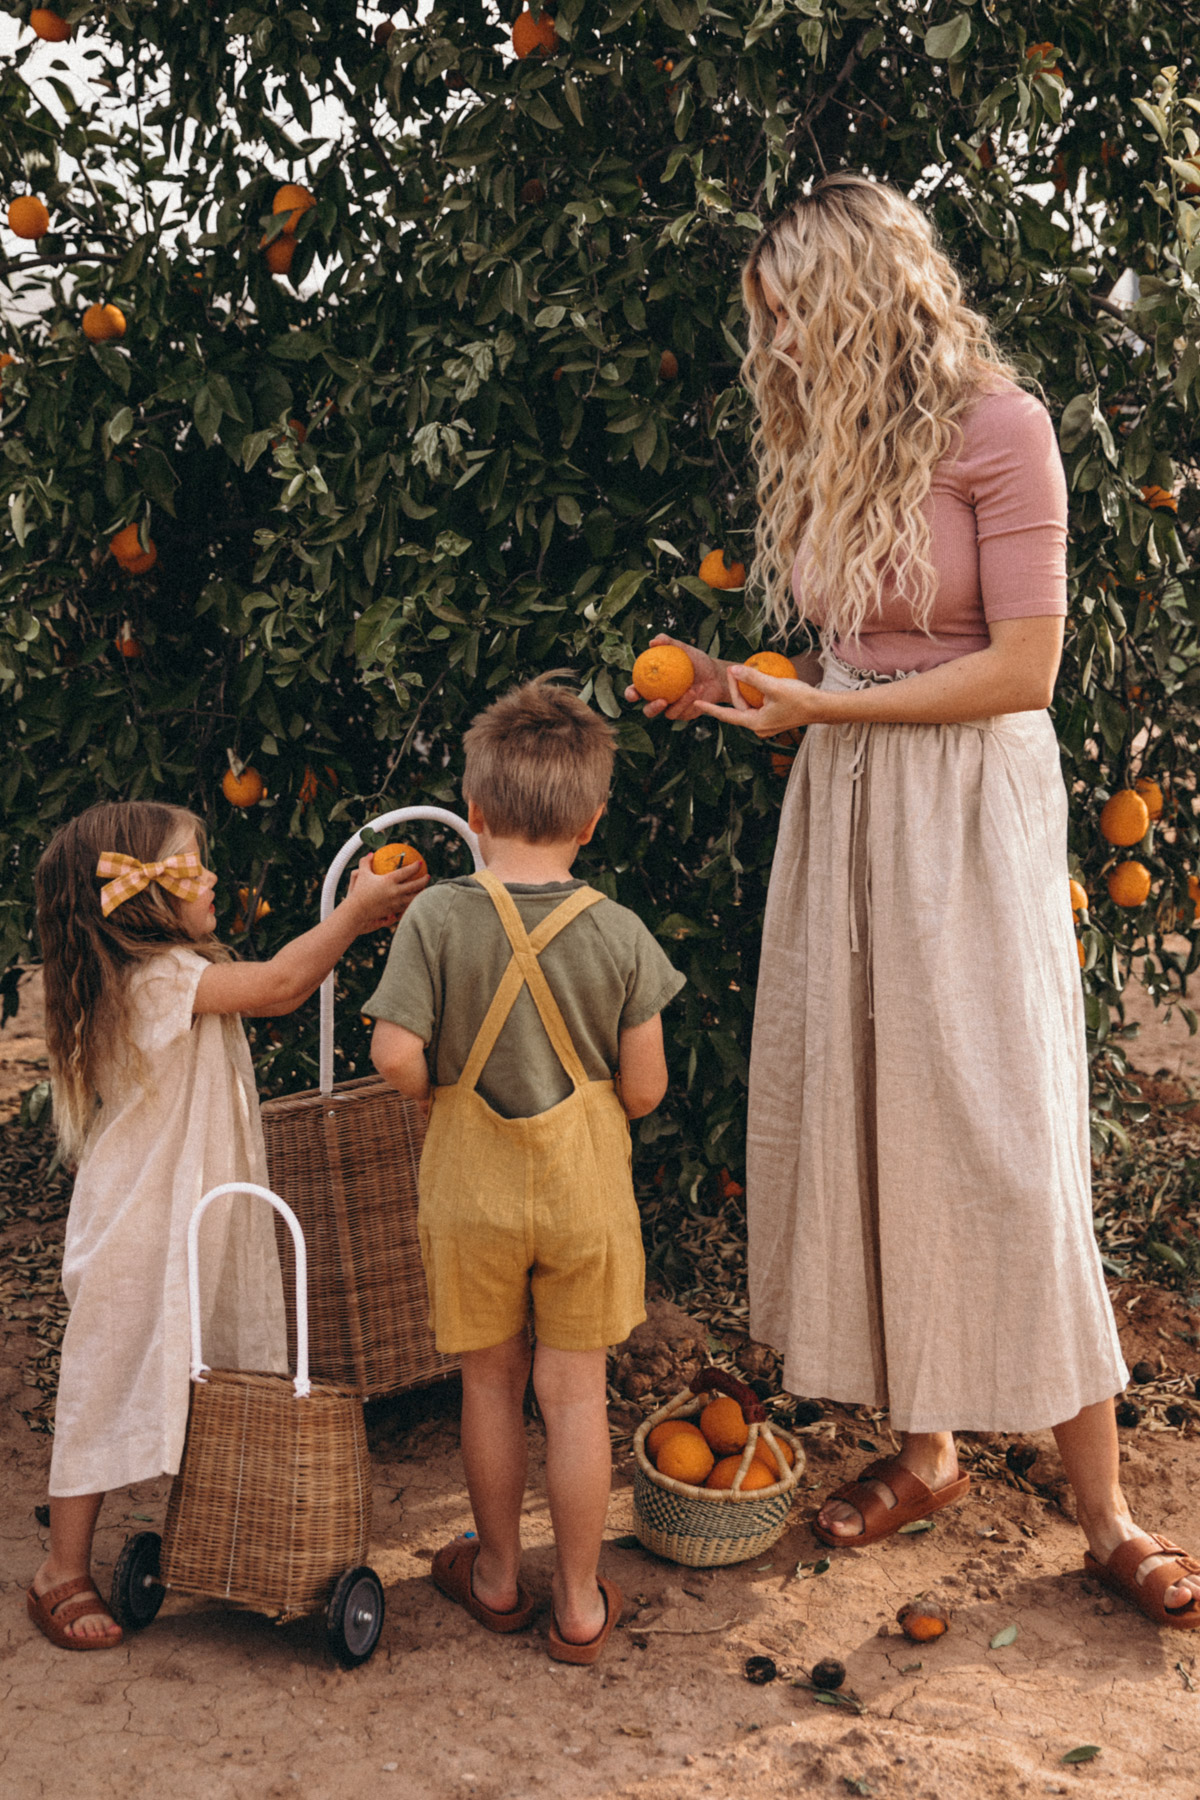 96dbf387e71 One of our favorite activities is picking and juicing oranges! As you have  probably noticed by now. Fresh OJ is a staple of my childhood and reminds  me so ...